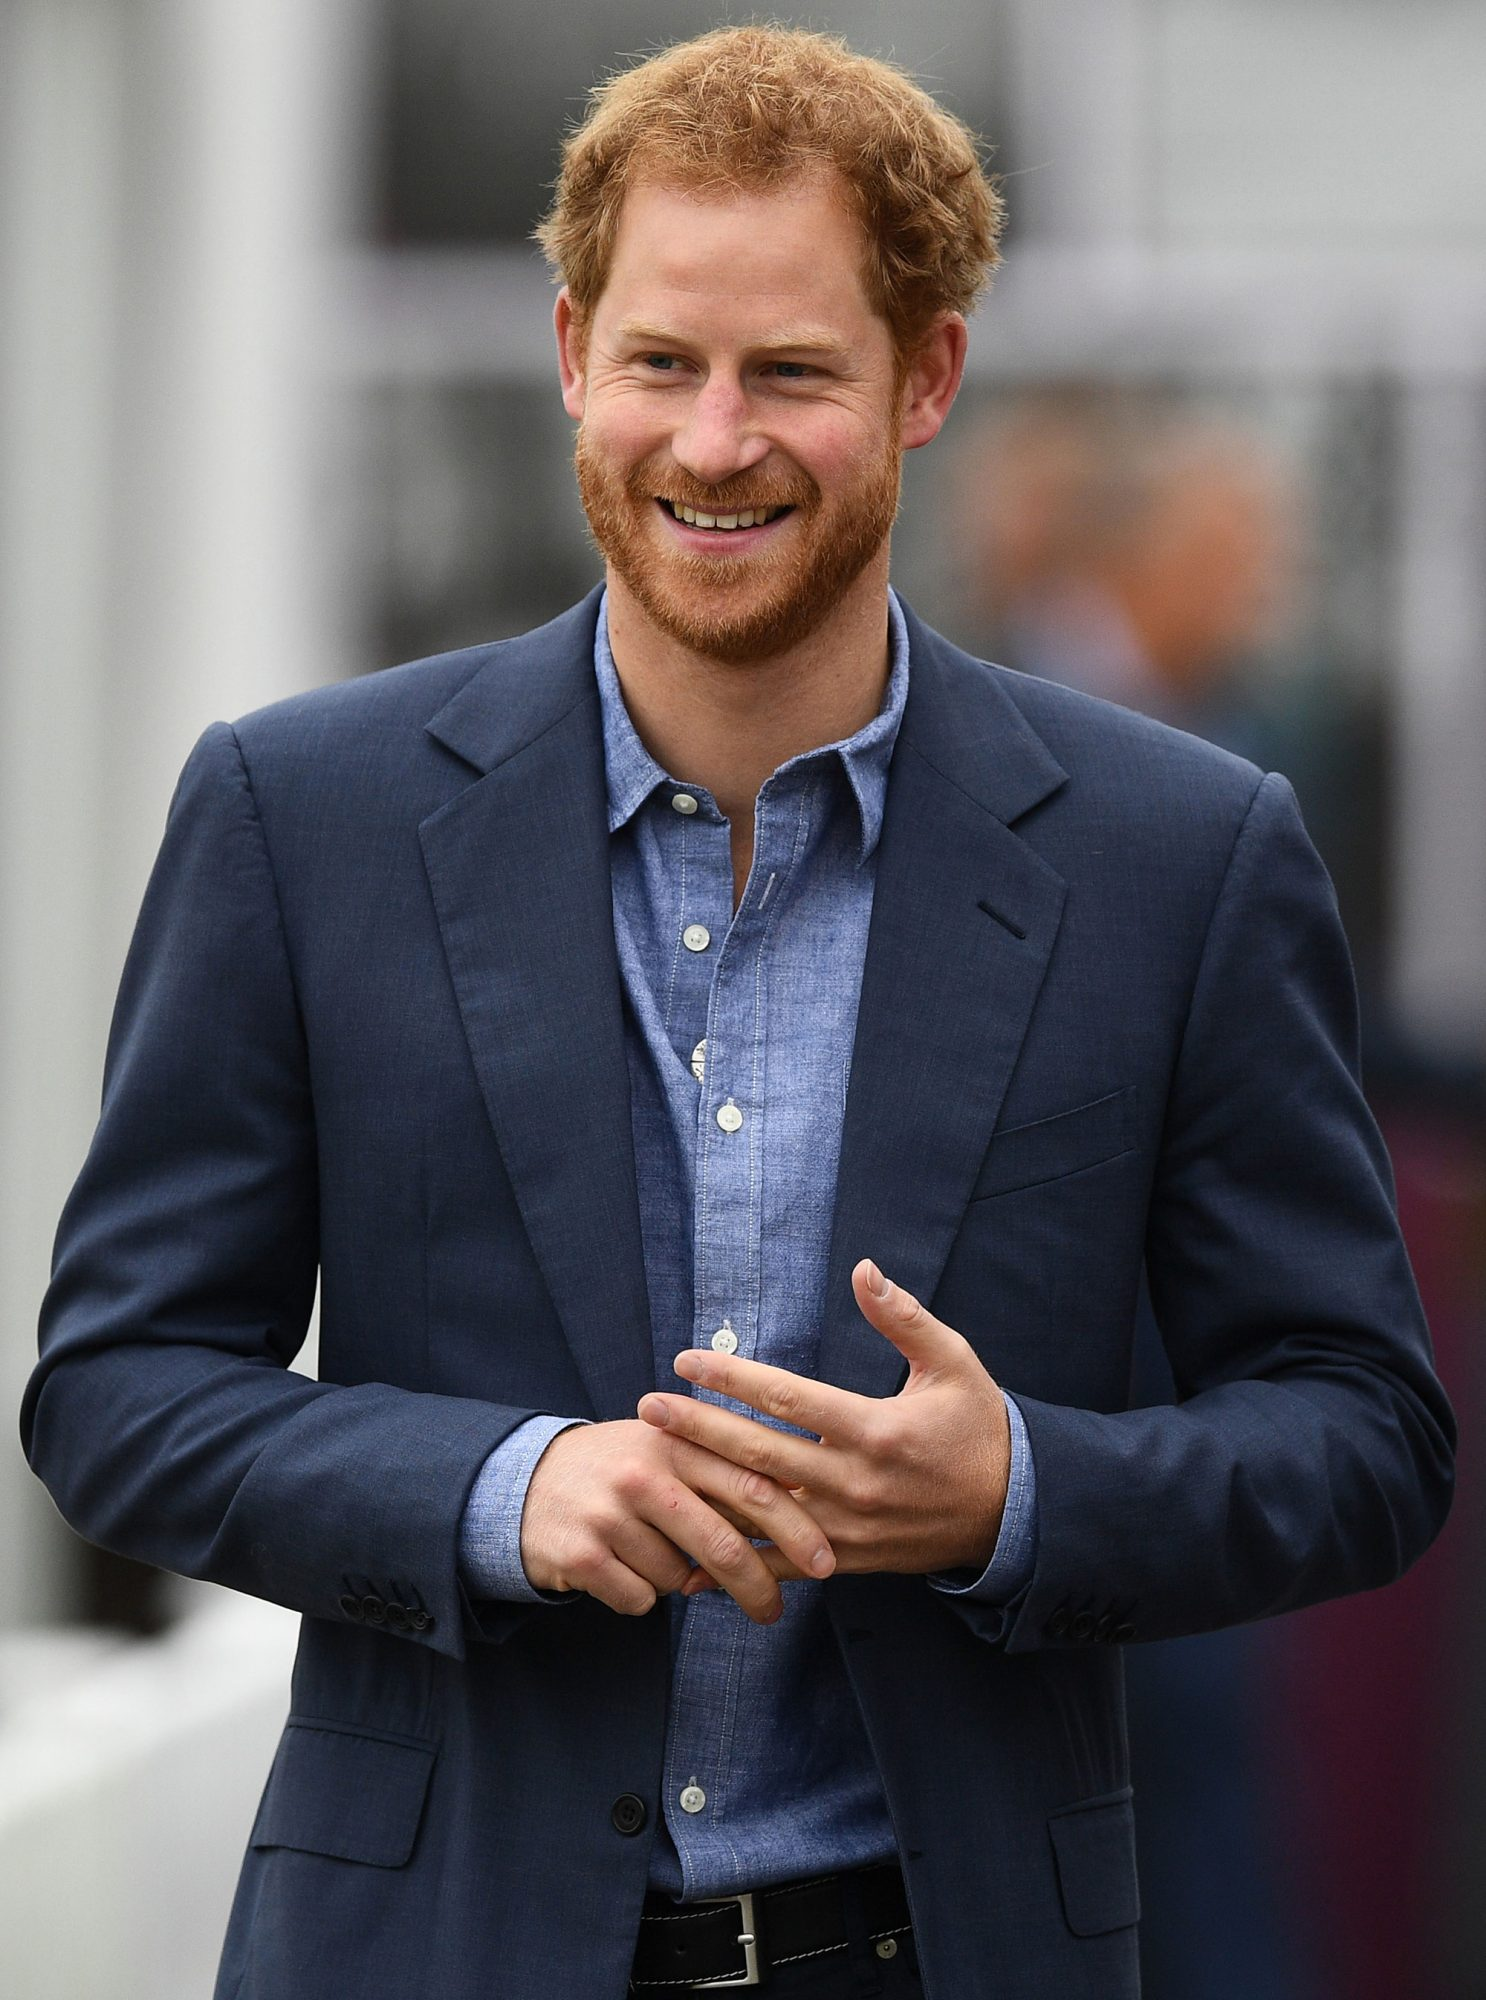 Britain's Prince Harry smiles as he arrives at Lord's cricket ground in London on October 7, 2016, to participate in a Coach Core sports coaching apprenticeship programme event. Prince Harry, Patron, attended an event at Lord's Cricket Club to mark the expansion of the Coach Core sports coaching apprenticeship programme. The Prince met with apprentices, coaches and some of the partners and supporters who are taking the successful programme to 100 partners across the UK by Spring 2017. / AFP / JUSTIN TALLIS (Photo credit should read JUSTIN TALLIS/AFP/Getty Images)